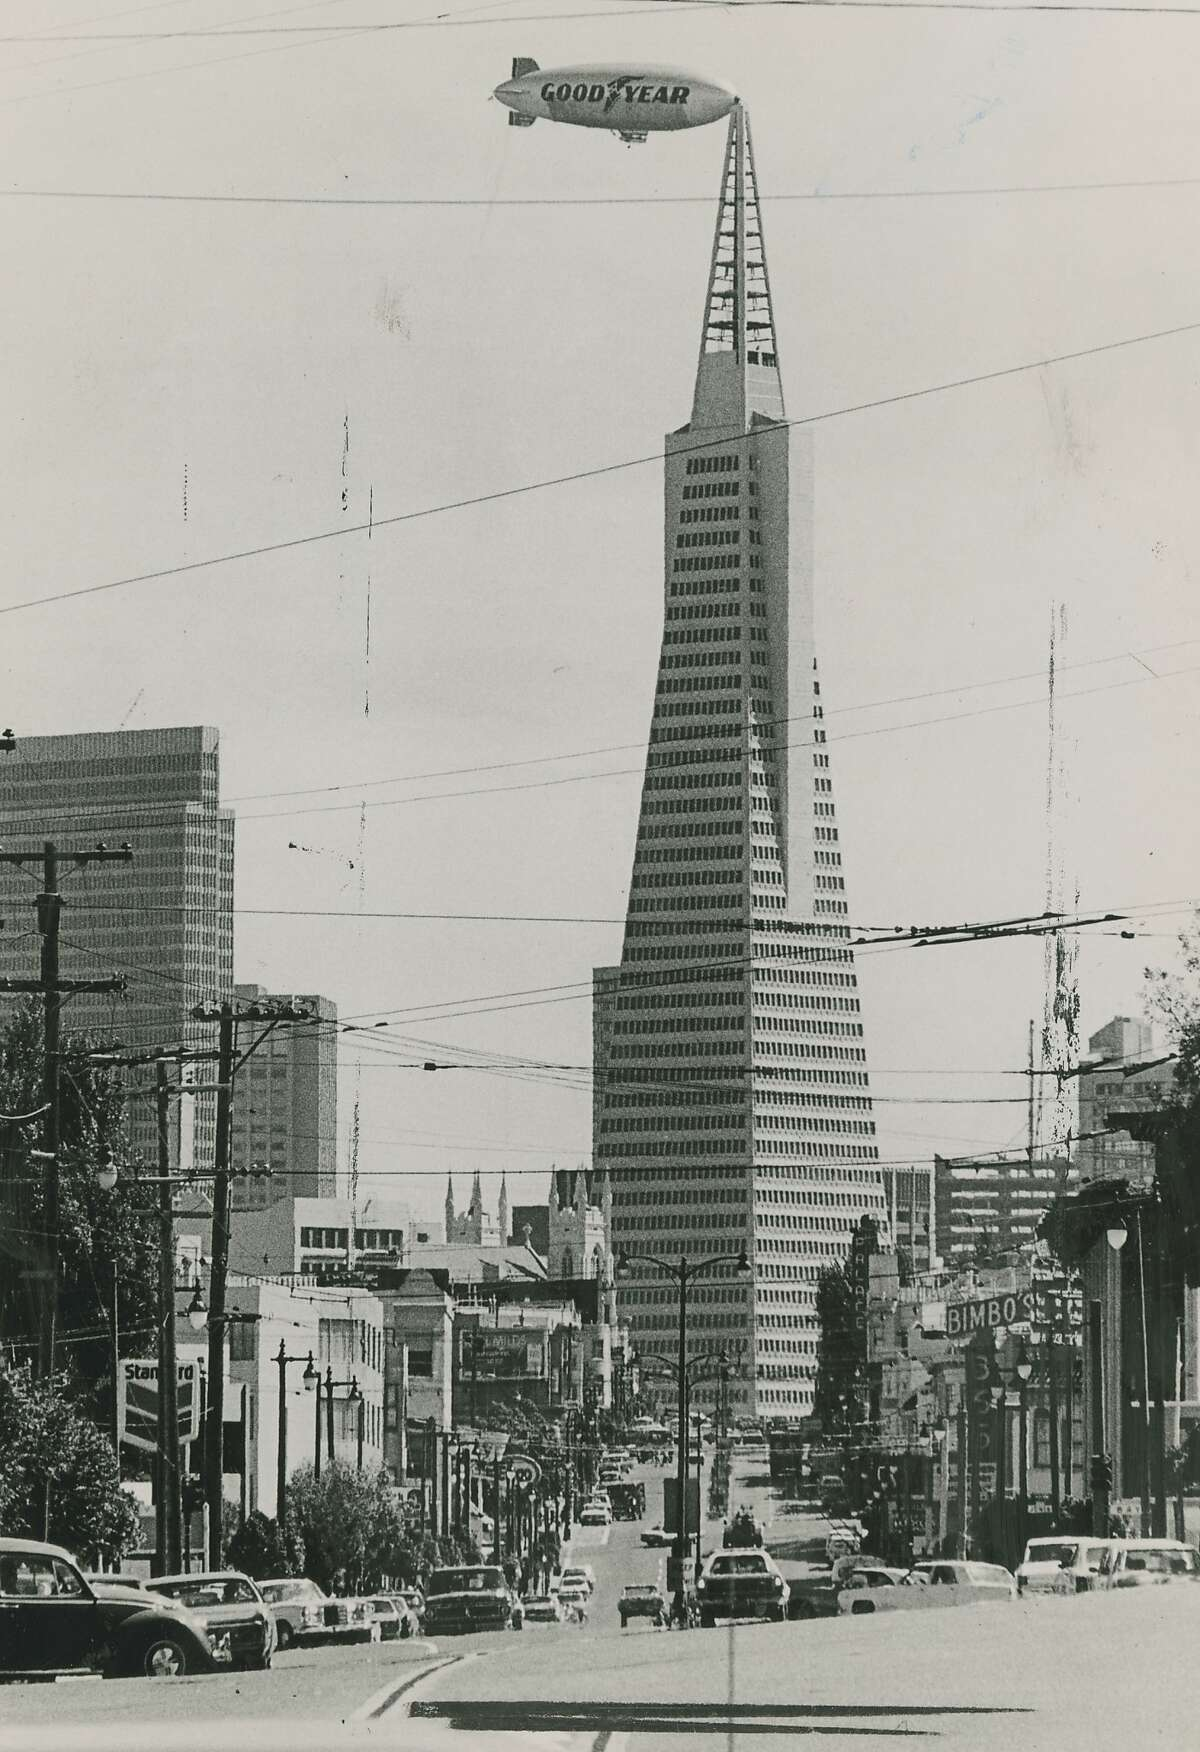 The Goodyear Blimp appears to be kissing the tip of the Transamerica Pyramid building in San Francisco. The photographer actually caught this image, in a split second, as the blimp was flying by, our King Kong to the Empire State Building. The photo is dated December 20, 1984. The Northbeach club, Bimbo, can be seen in the background.